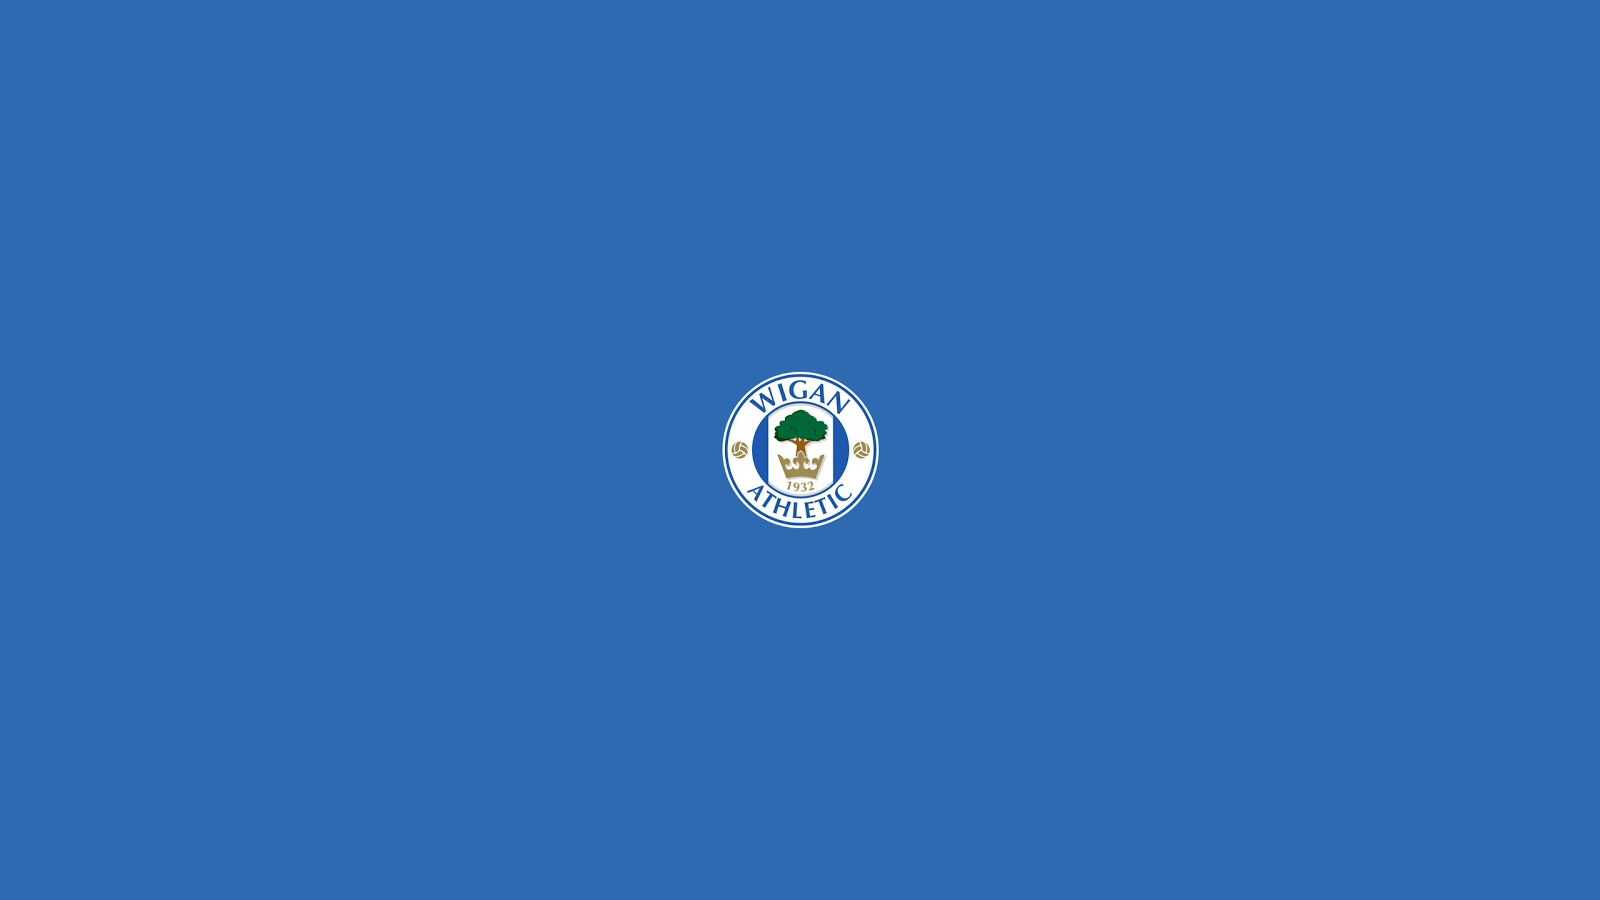 England Football Logos: Wigan Athletic FC Logo Picture Gallery